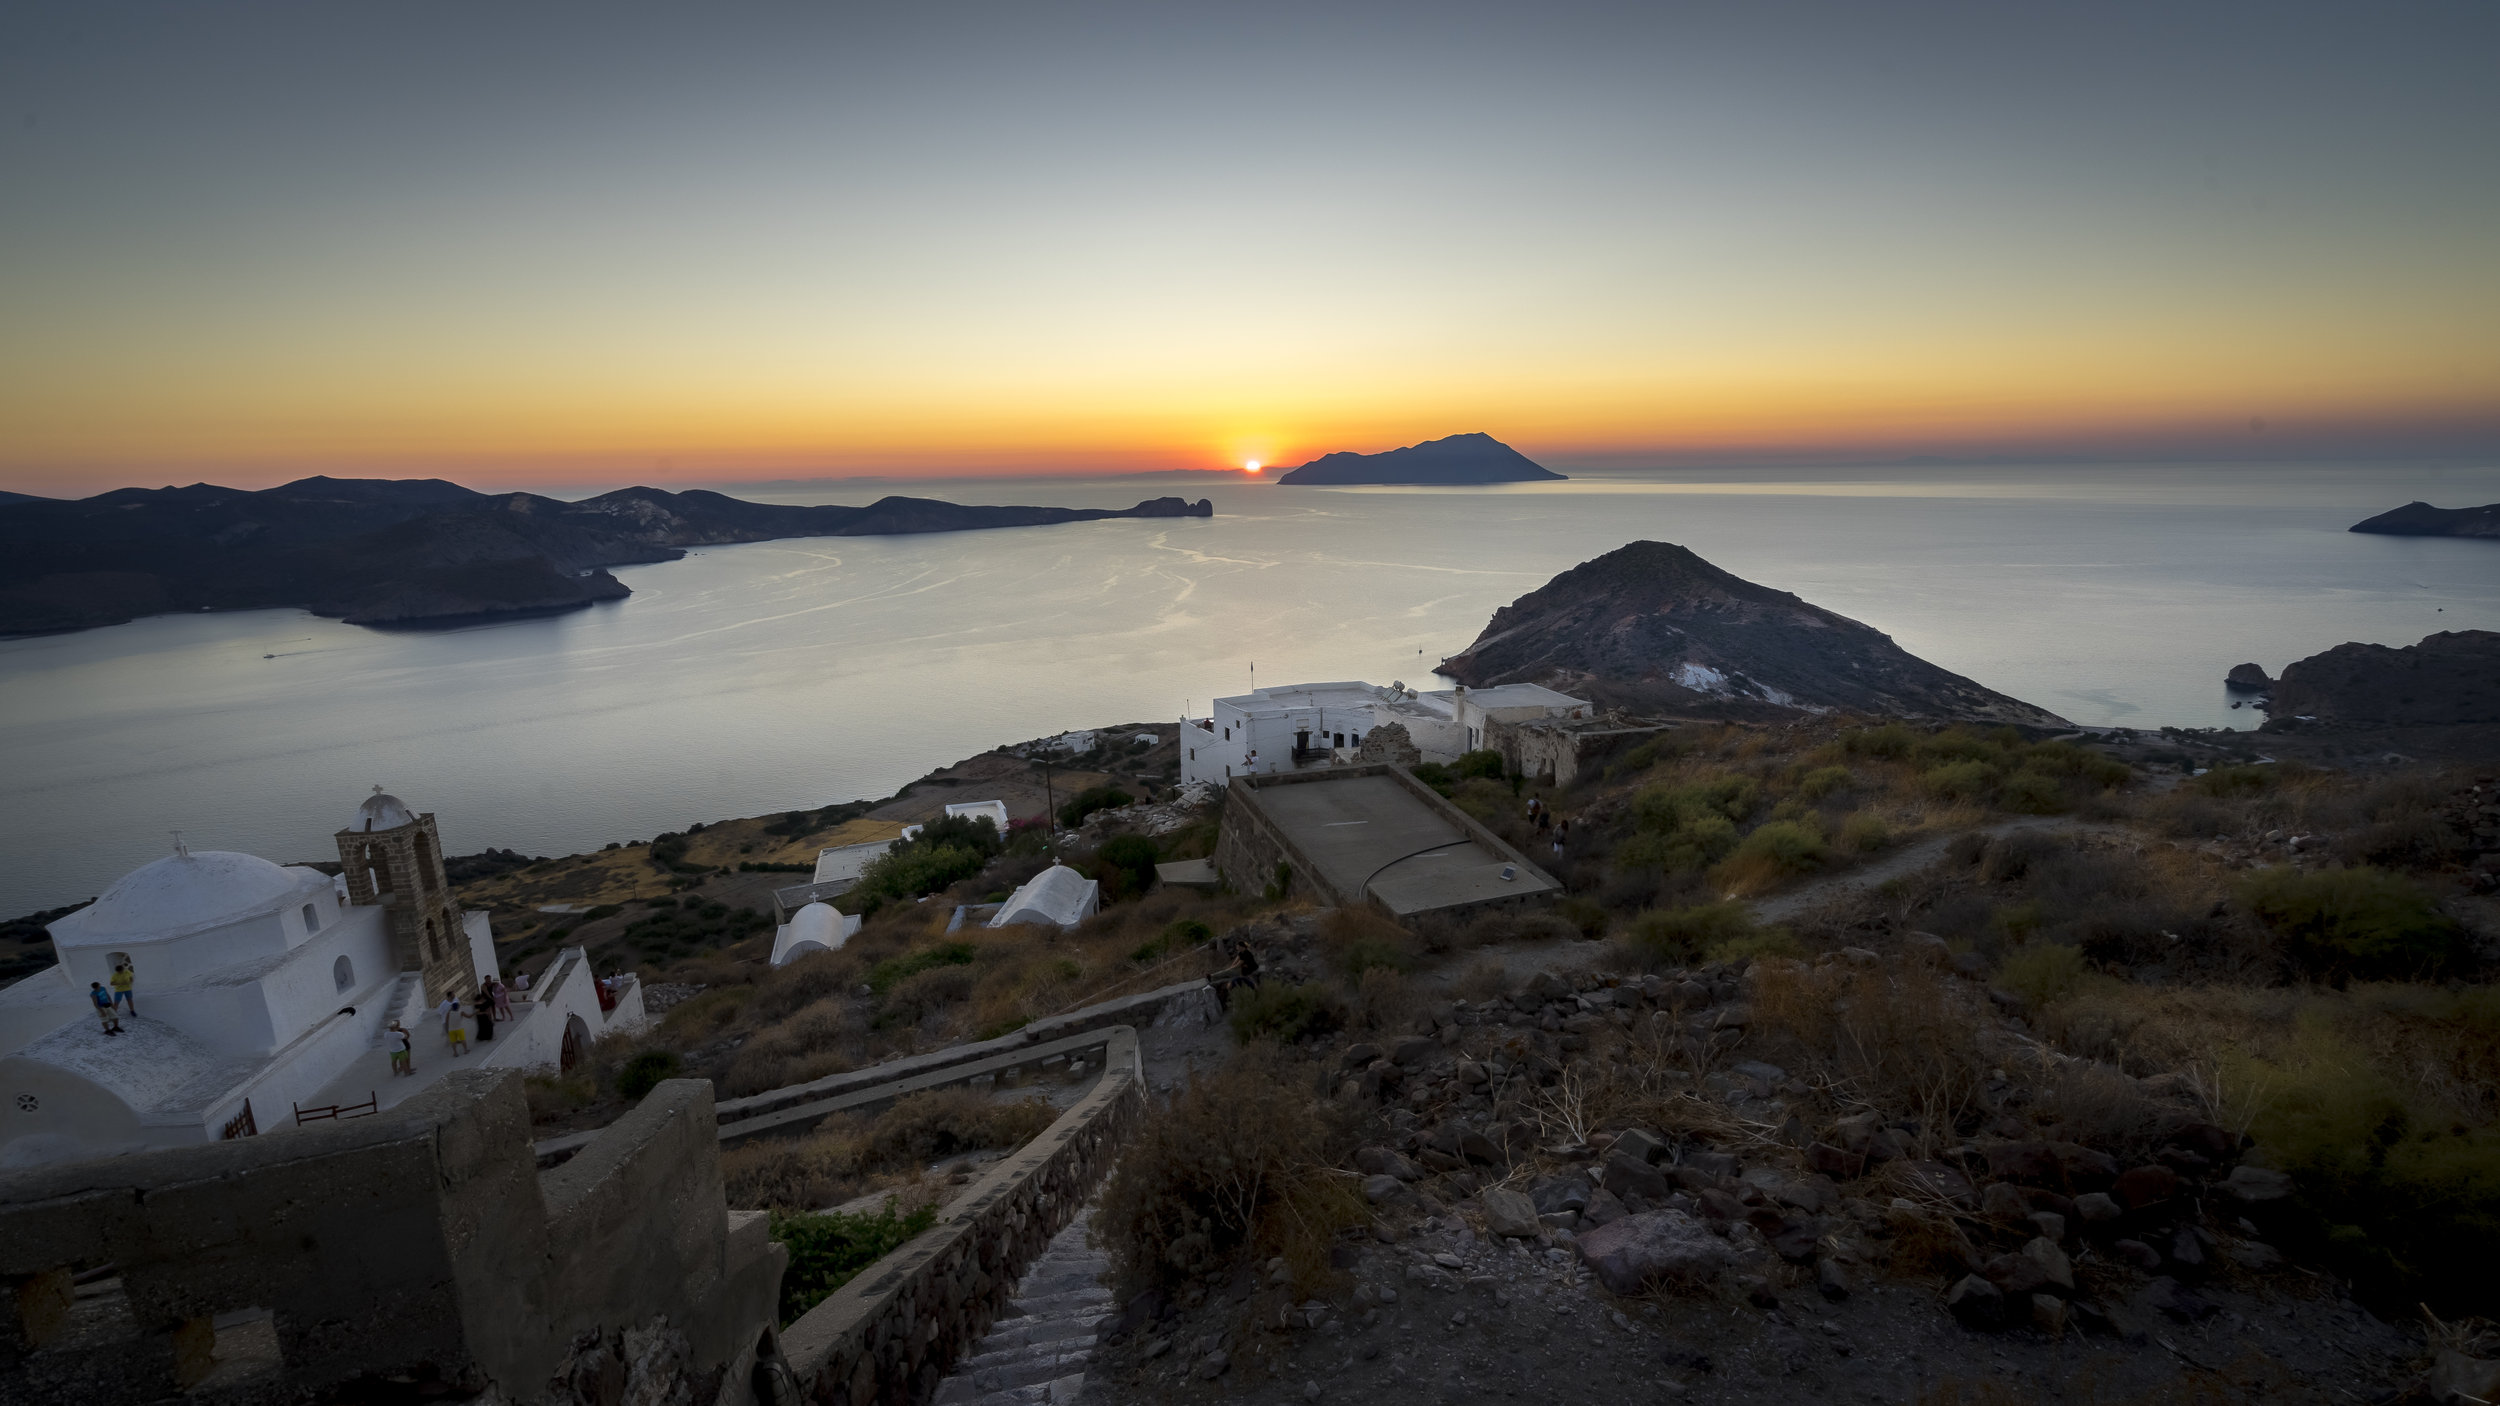 Santorini eat your heart out.This is one of the most popular places to take in the sunset up on the top of one of one of the islands highest points in an old ruined castle. You almost certainly won't be alone and there will be cheering when the sun sets.